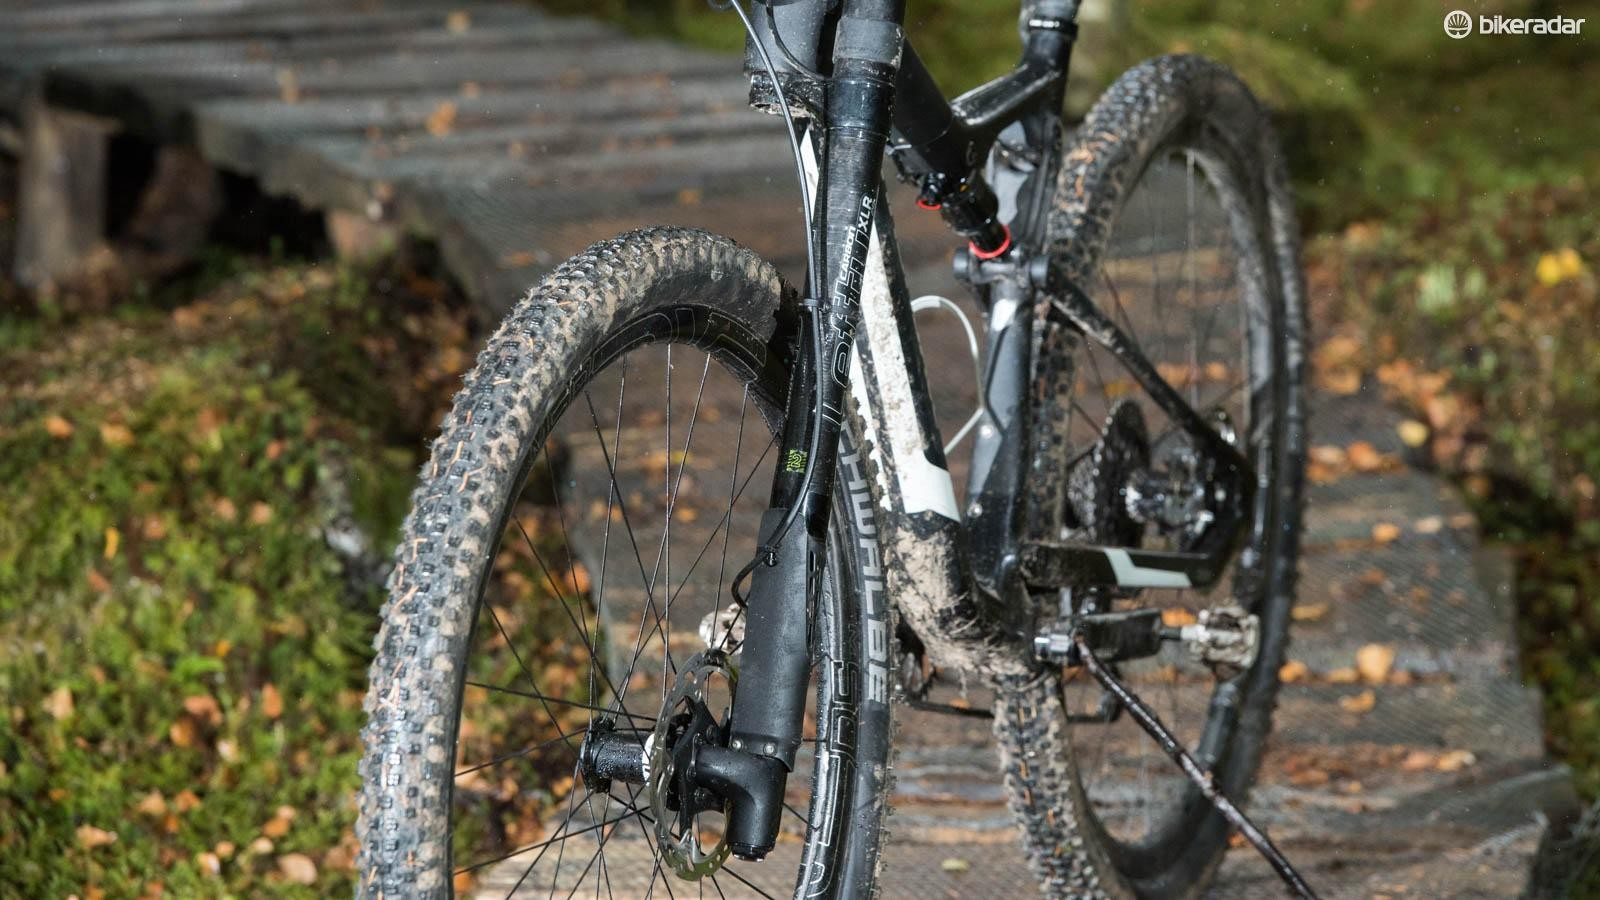 Stiff, light and puncture friendly, Cannondale's Lefty fork is a racer's favourite for very good reason. The current damping is the best in its 17 year history too